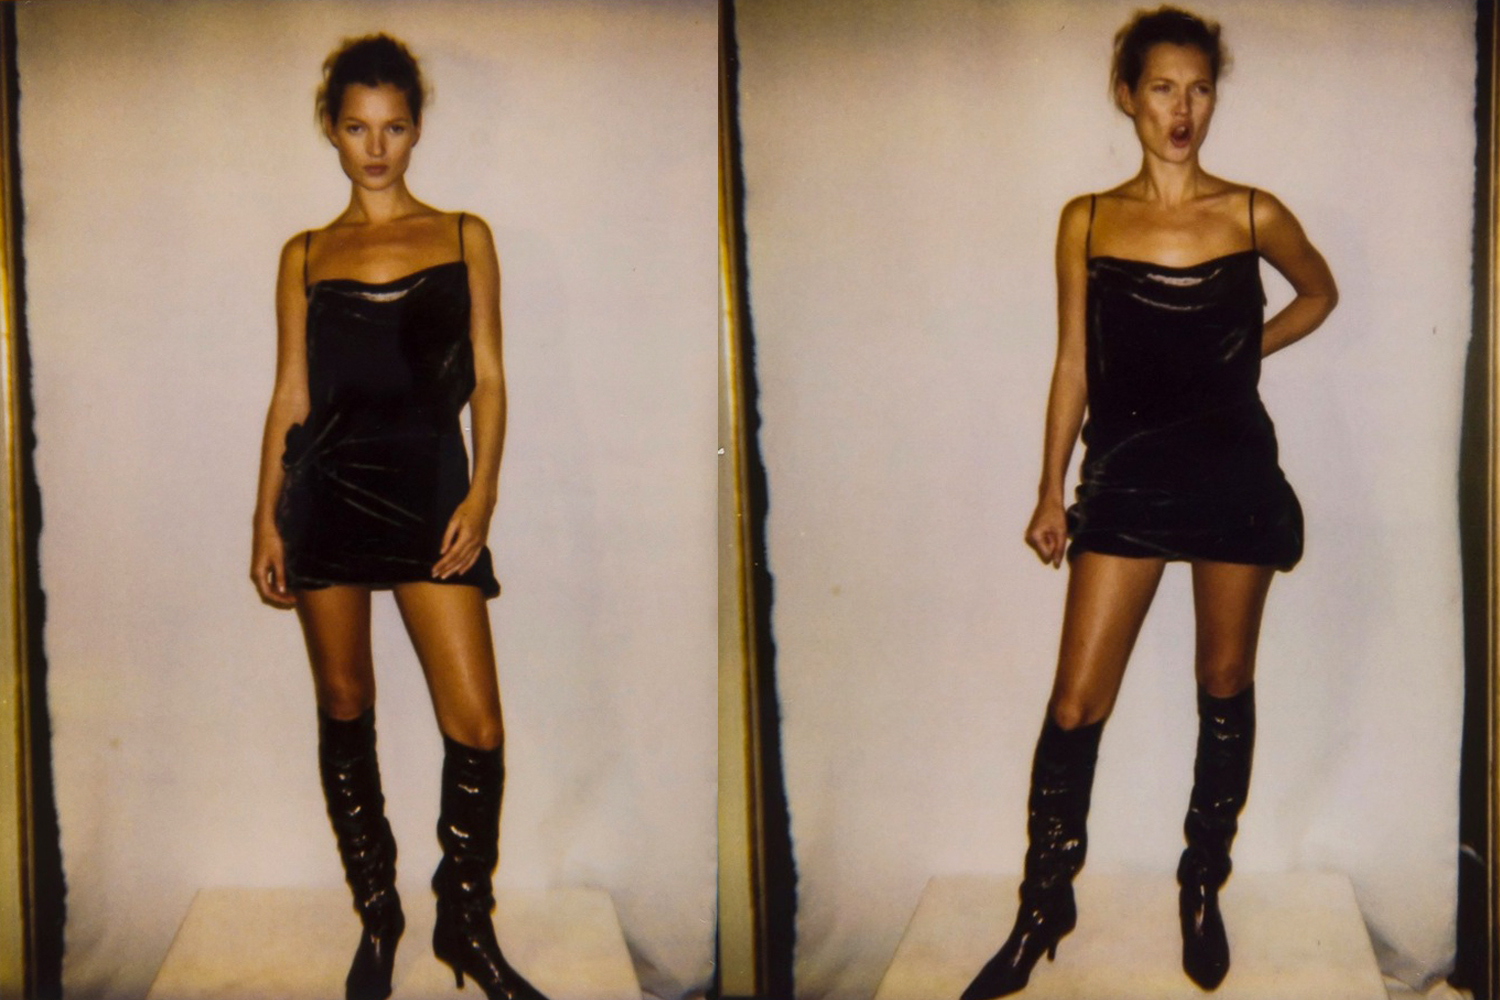 Tom Ford, Tom Ford Gucci, Kate Moss, Kate Moss Gucci, Kate Moss Backstage, Kate Moss 90's